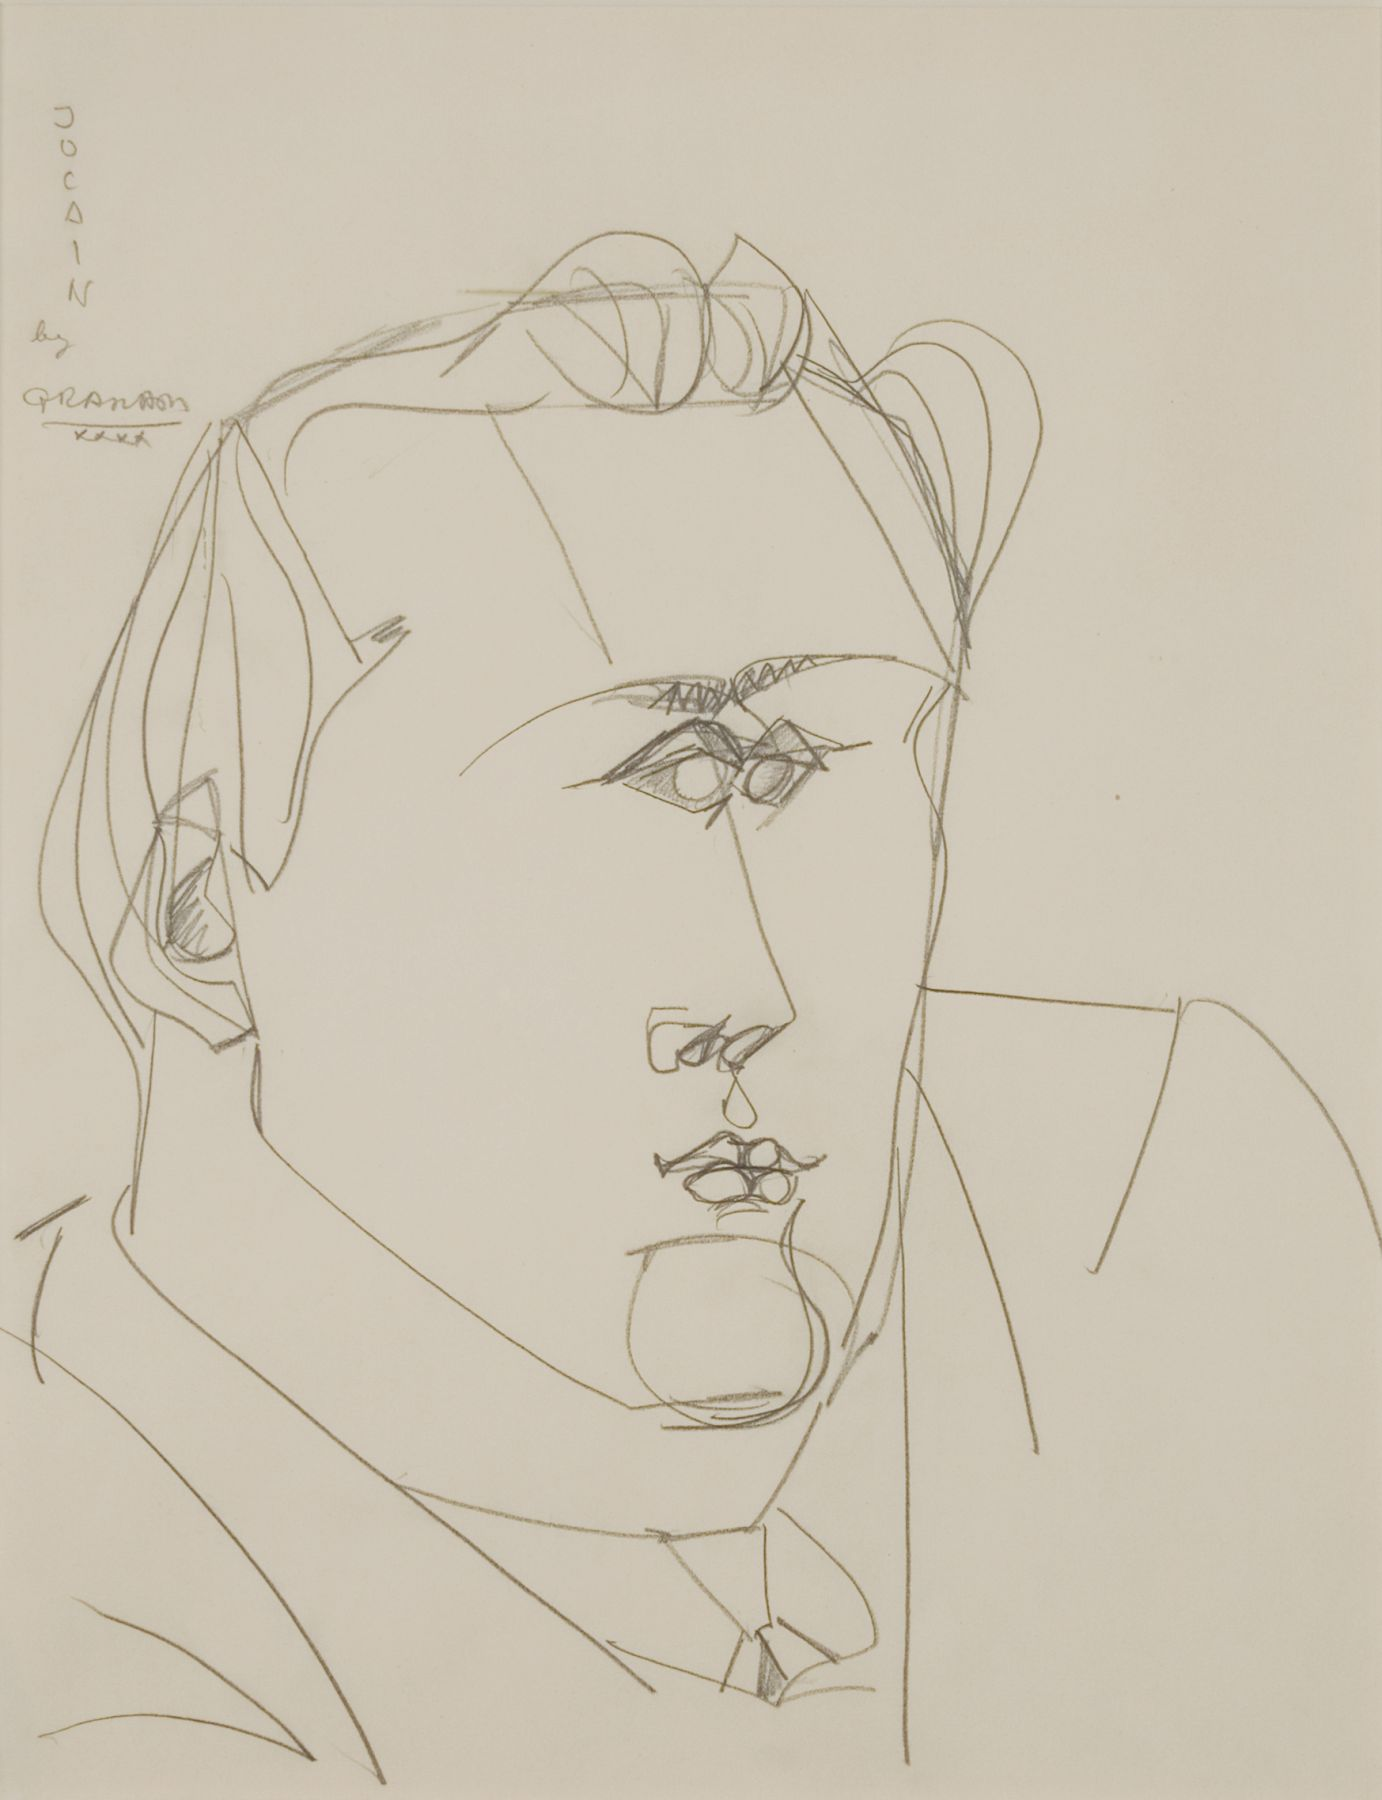 John Graham, Portrait of Jo Cain, 1940, pencil on paper, 16 1/2 x 13 inches